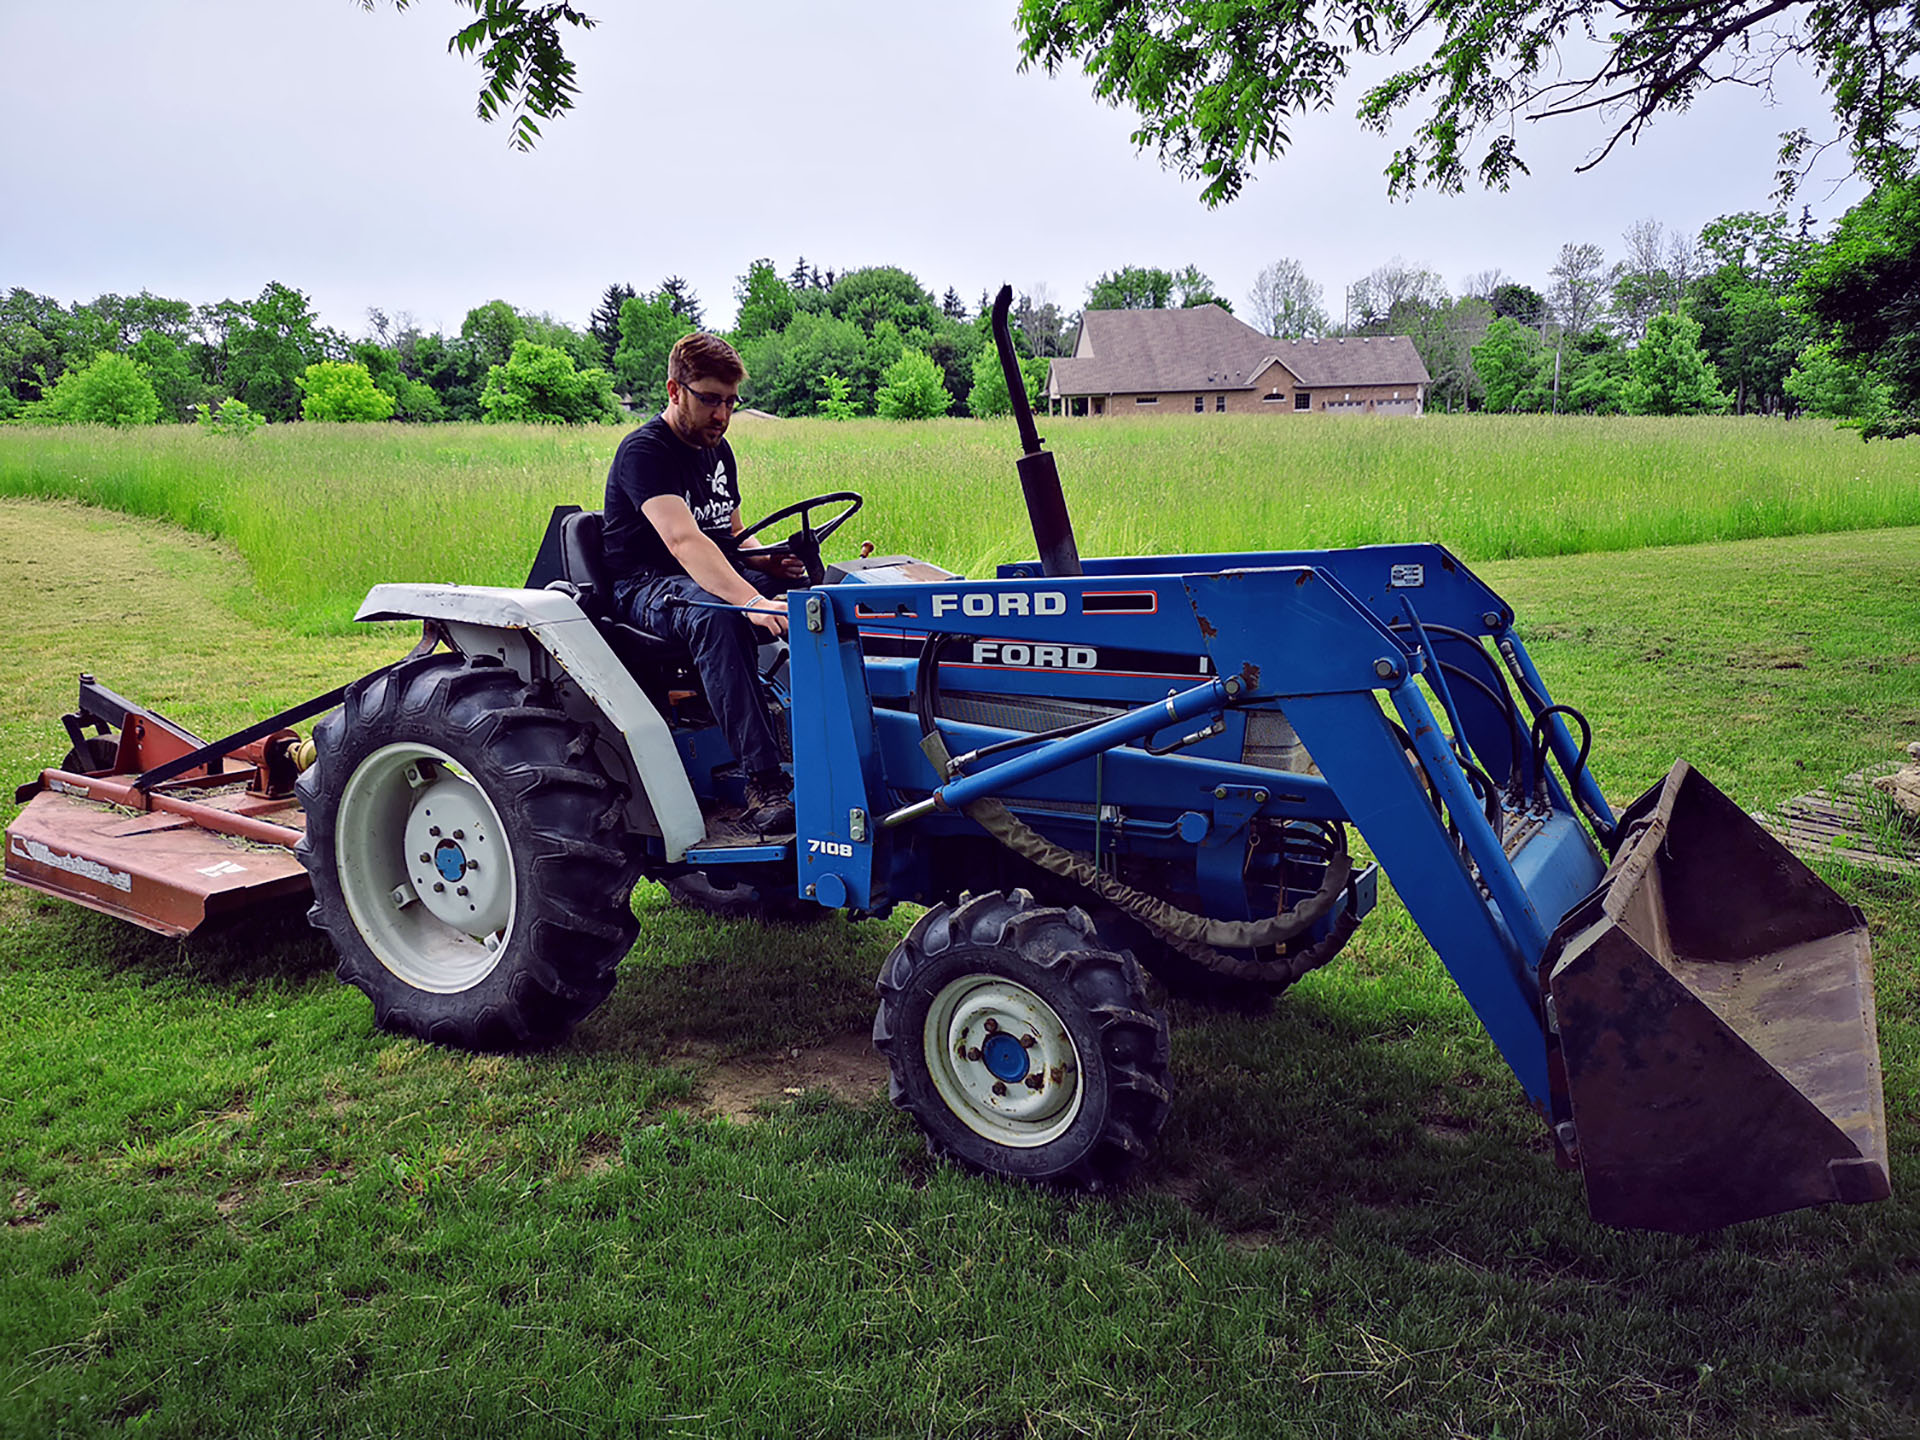 Joel on the tracktor